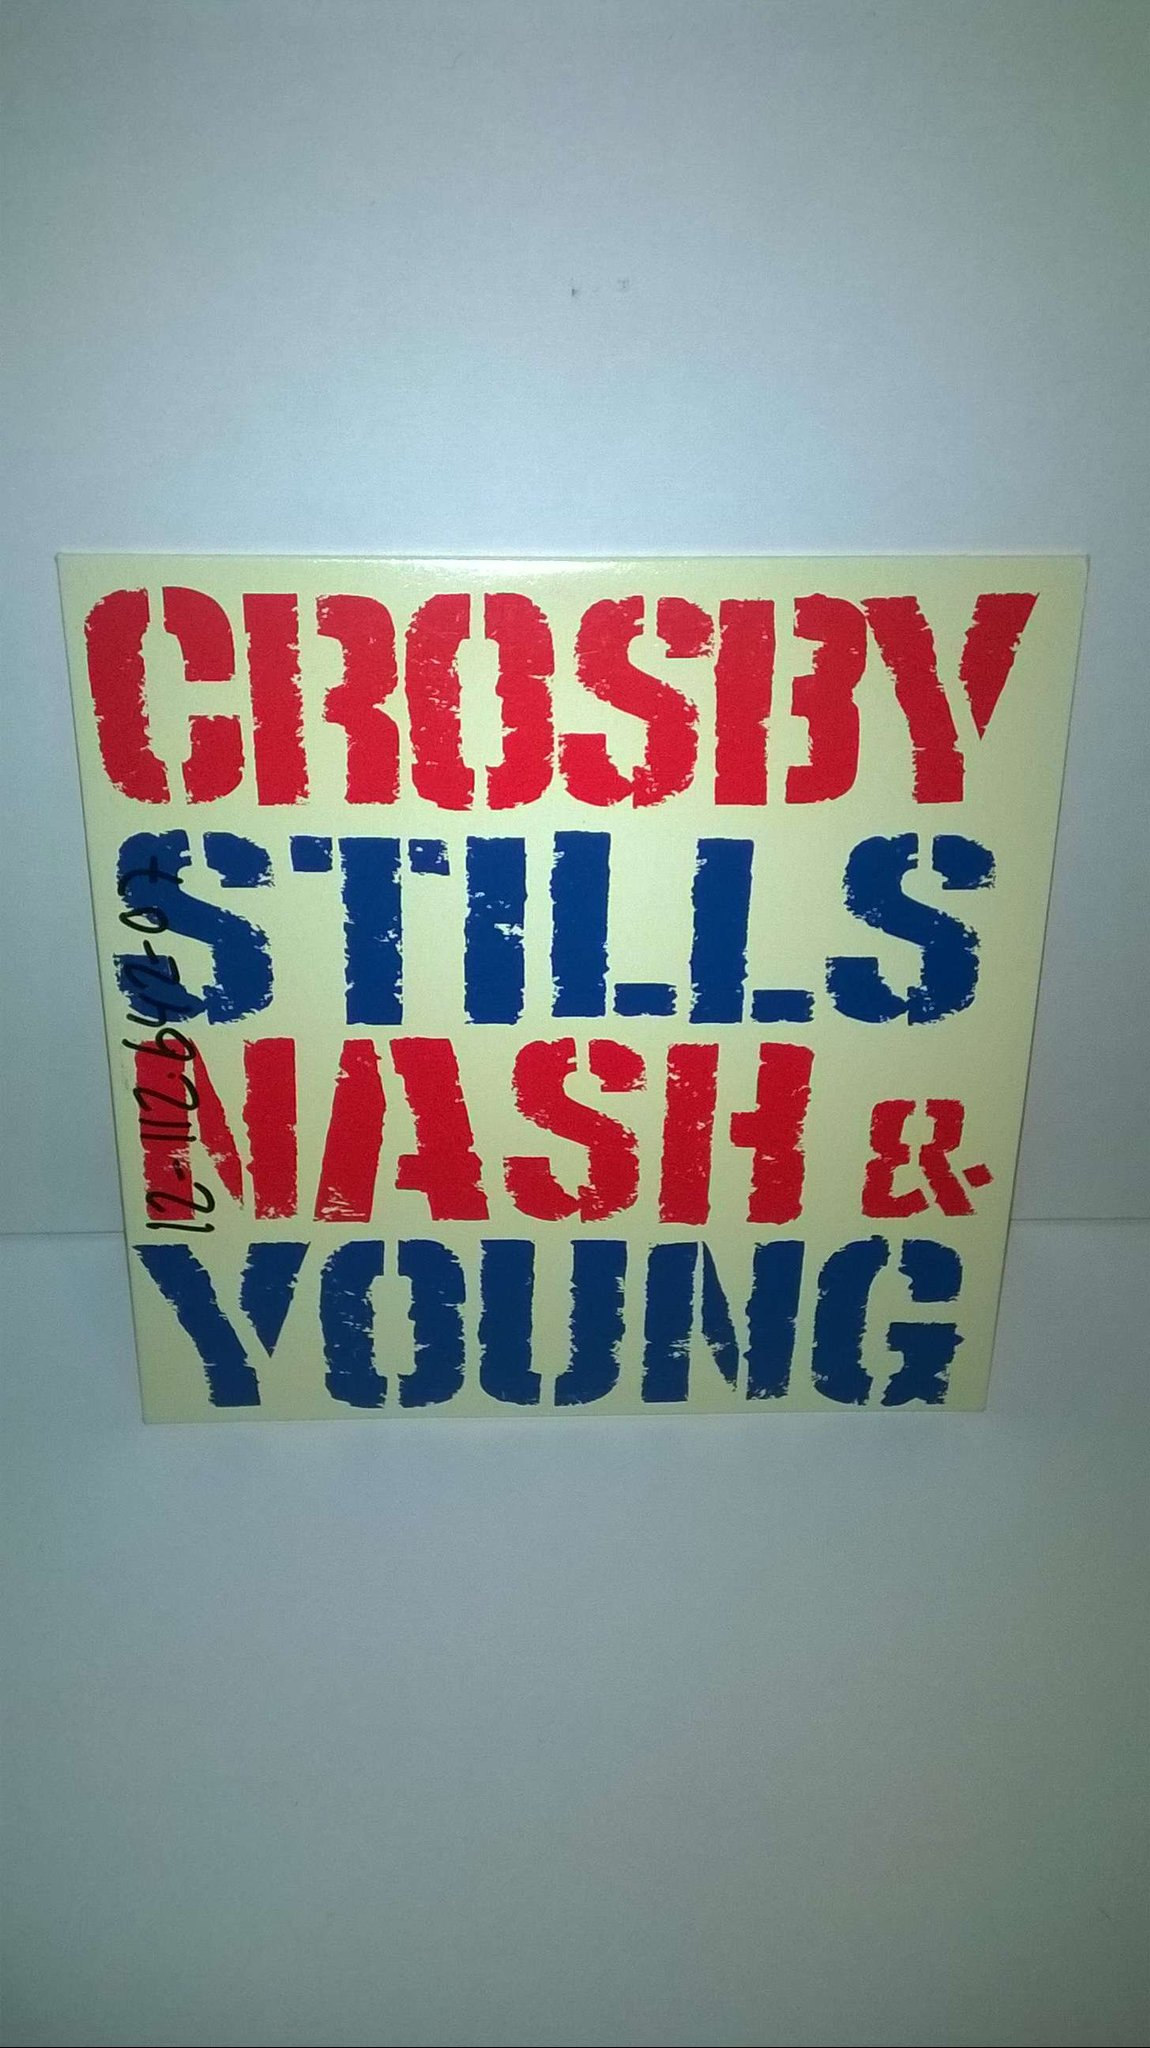 Crosby, Stills, Nash & Young - Looking Forward, CD, promo